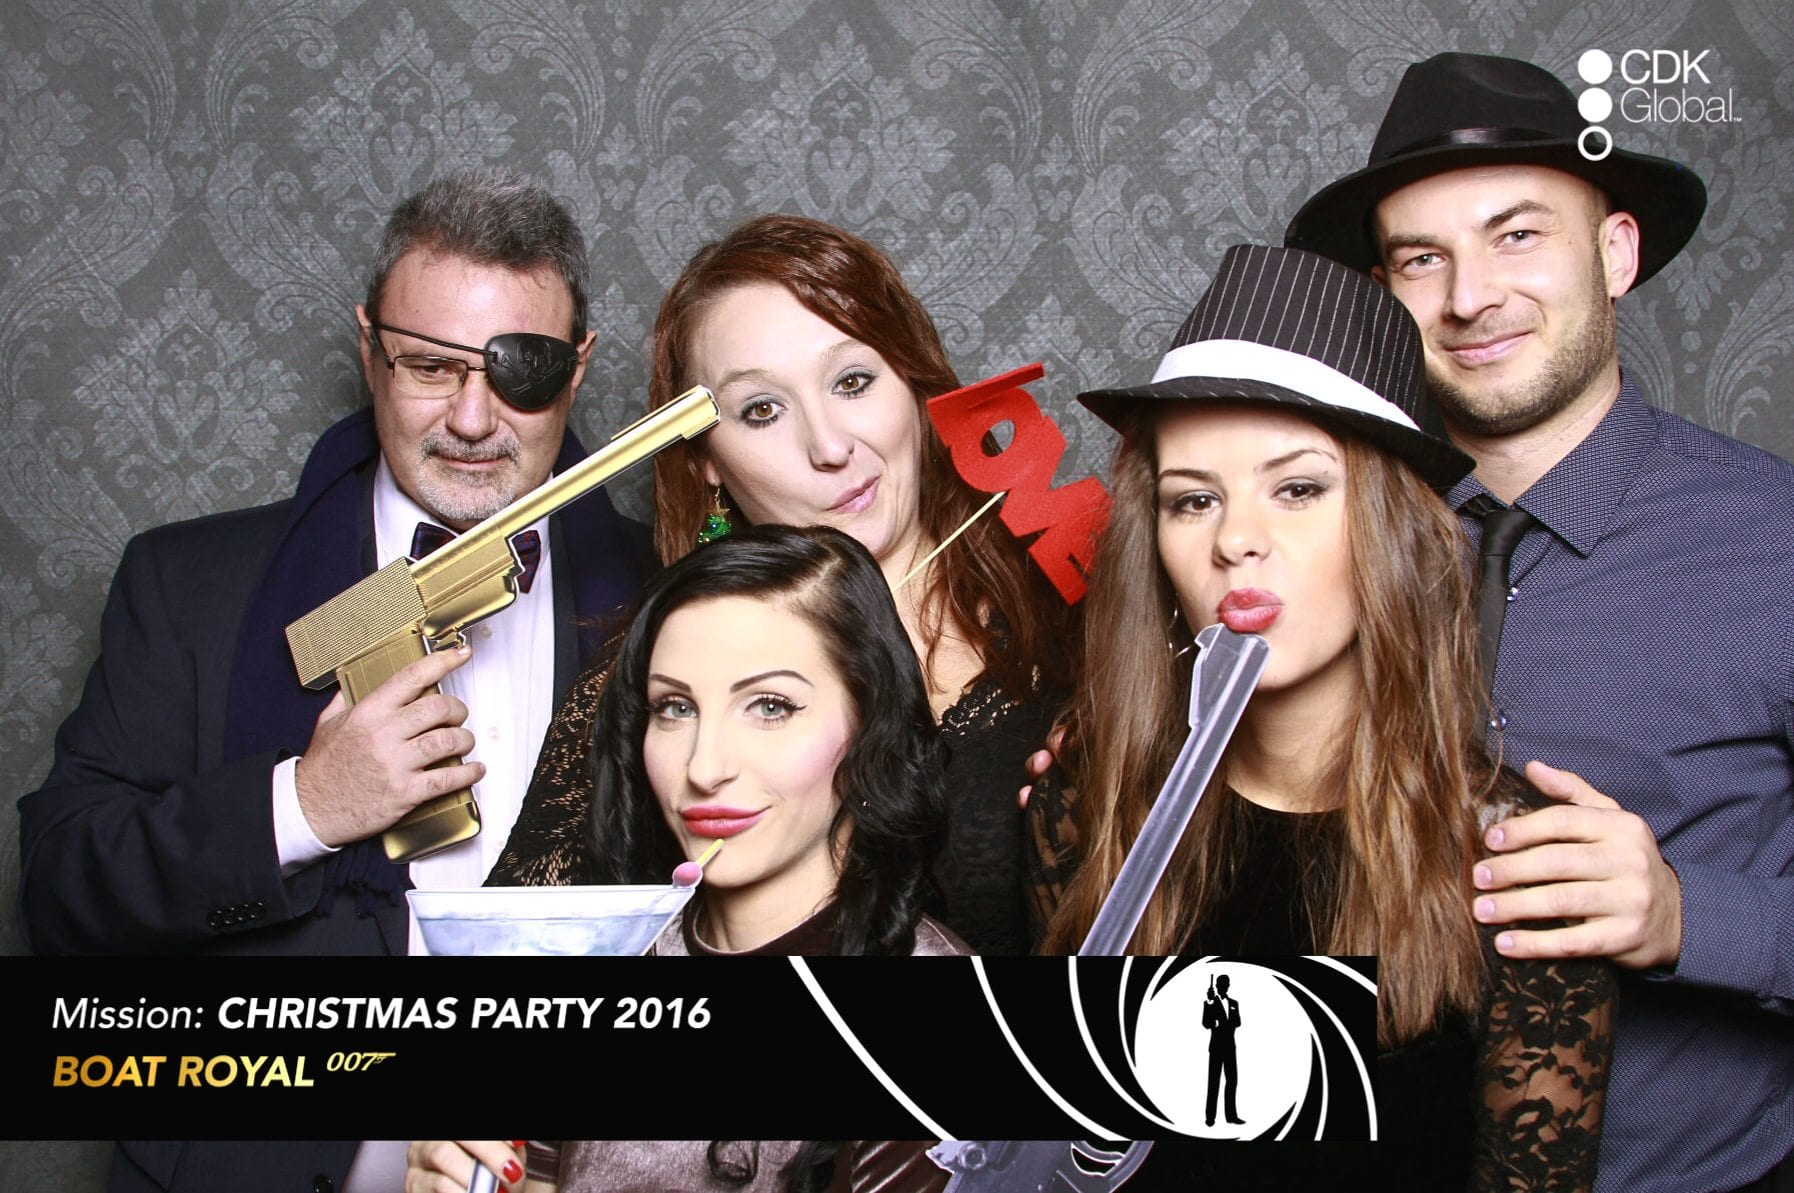 fotokoutek-cdk-global-christmas-party-16-12-2016-191750